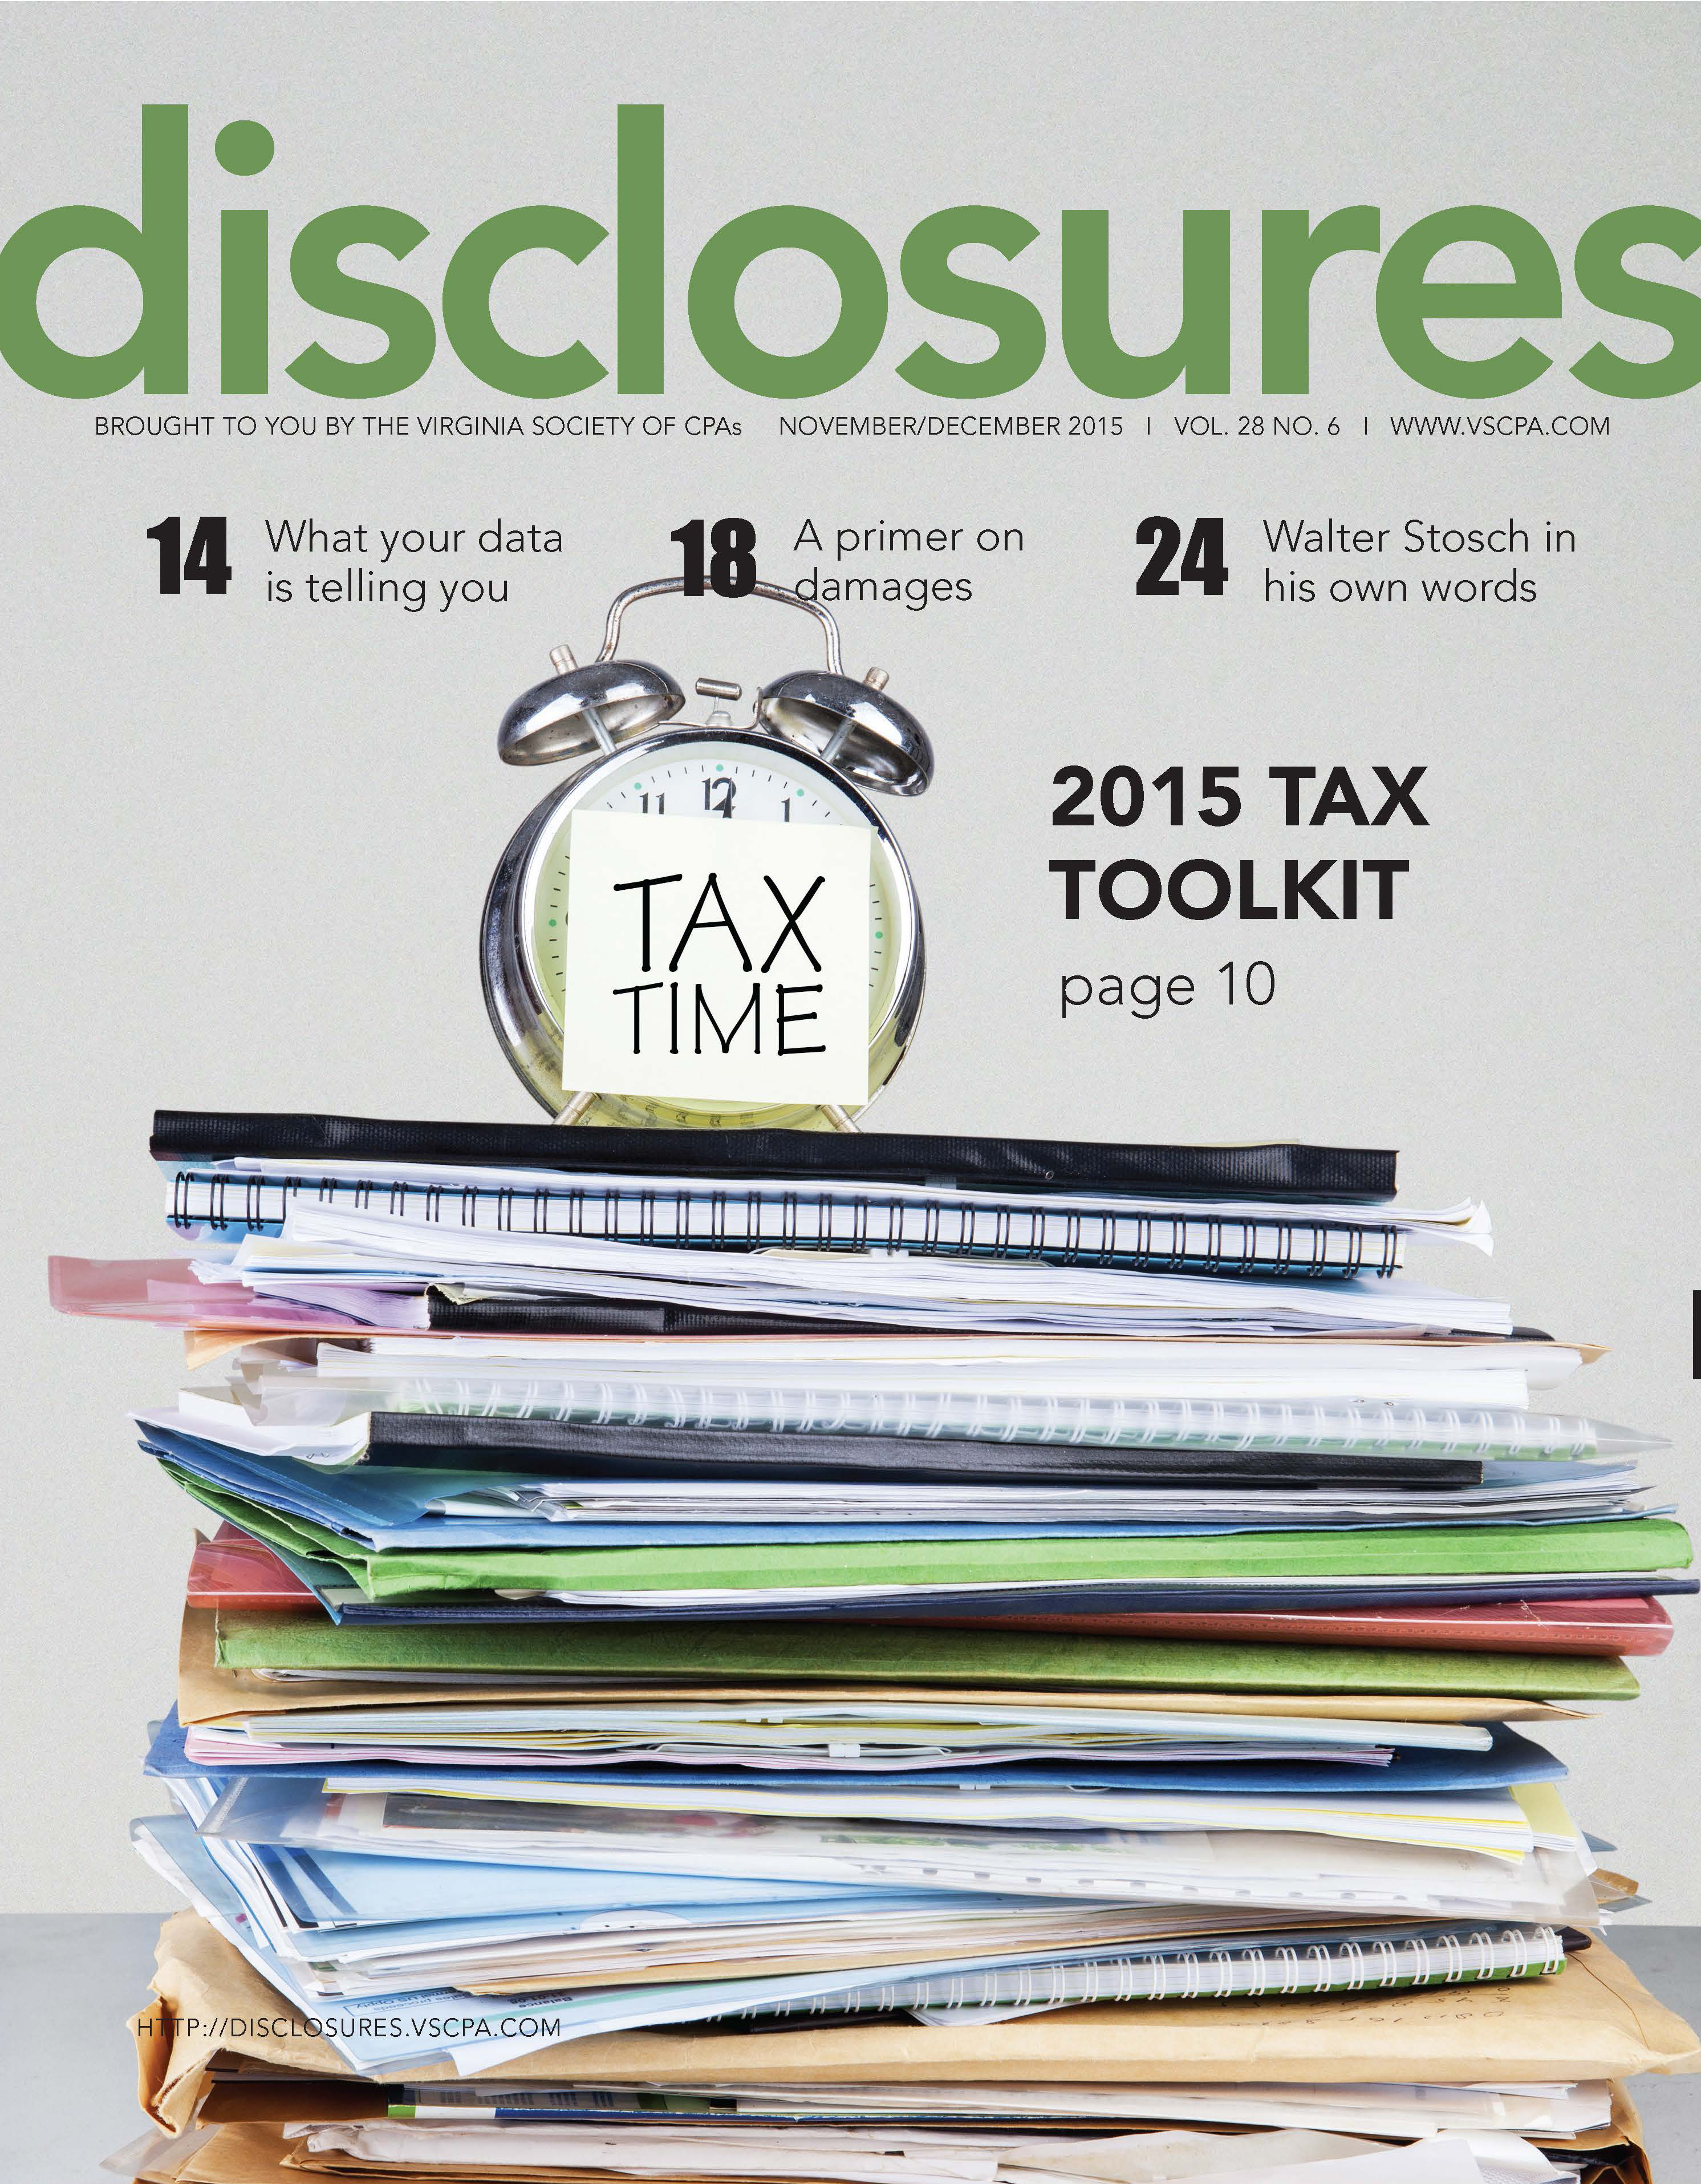 Cover of November/December 2015 issue of Disclosures